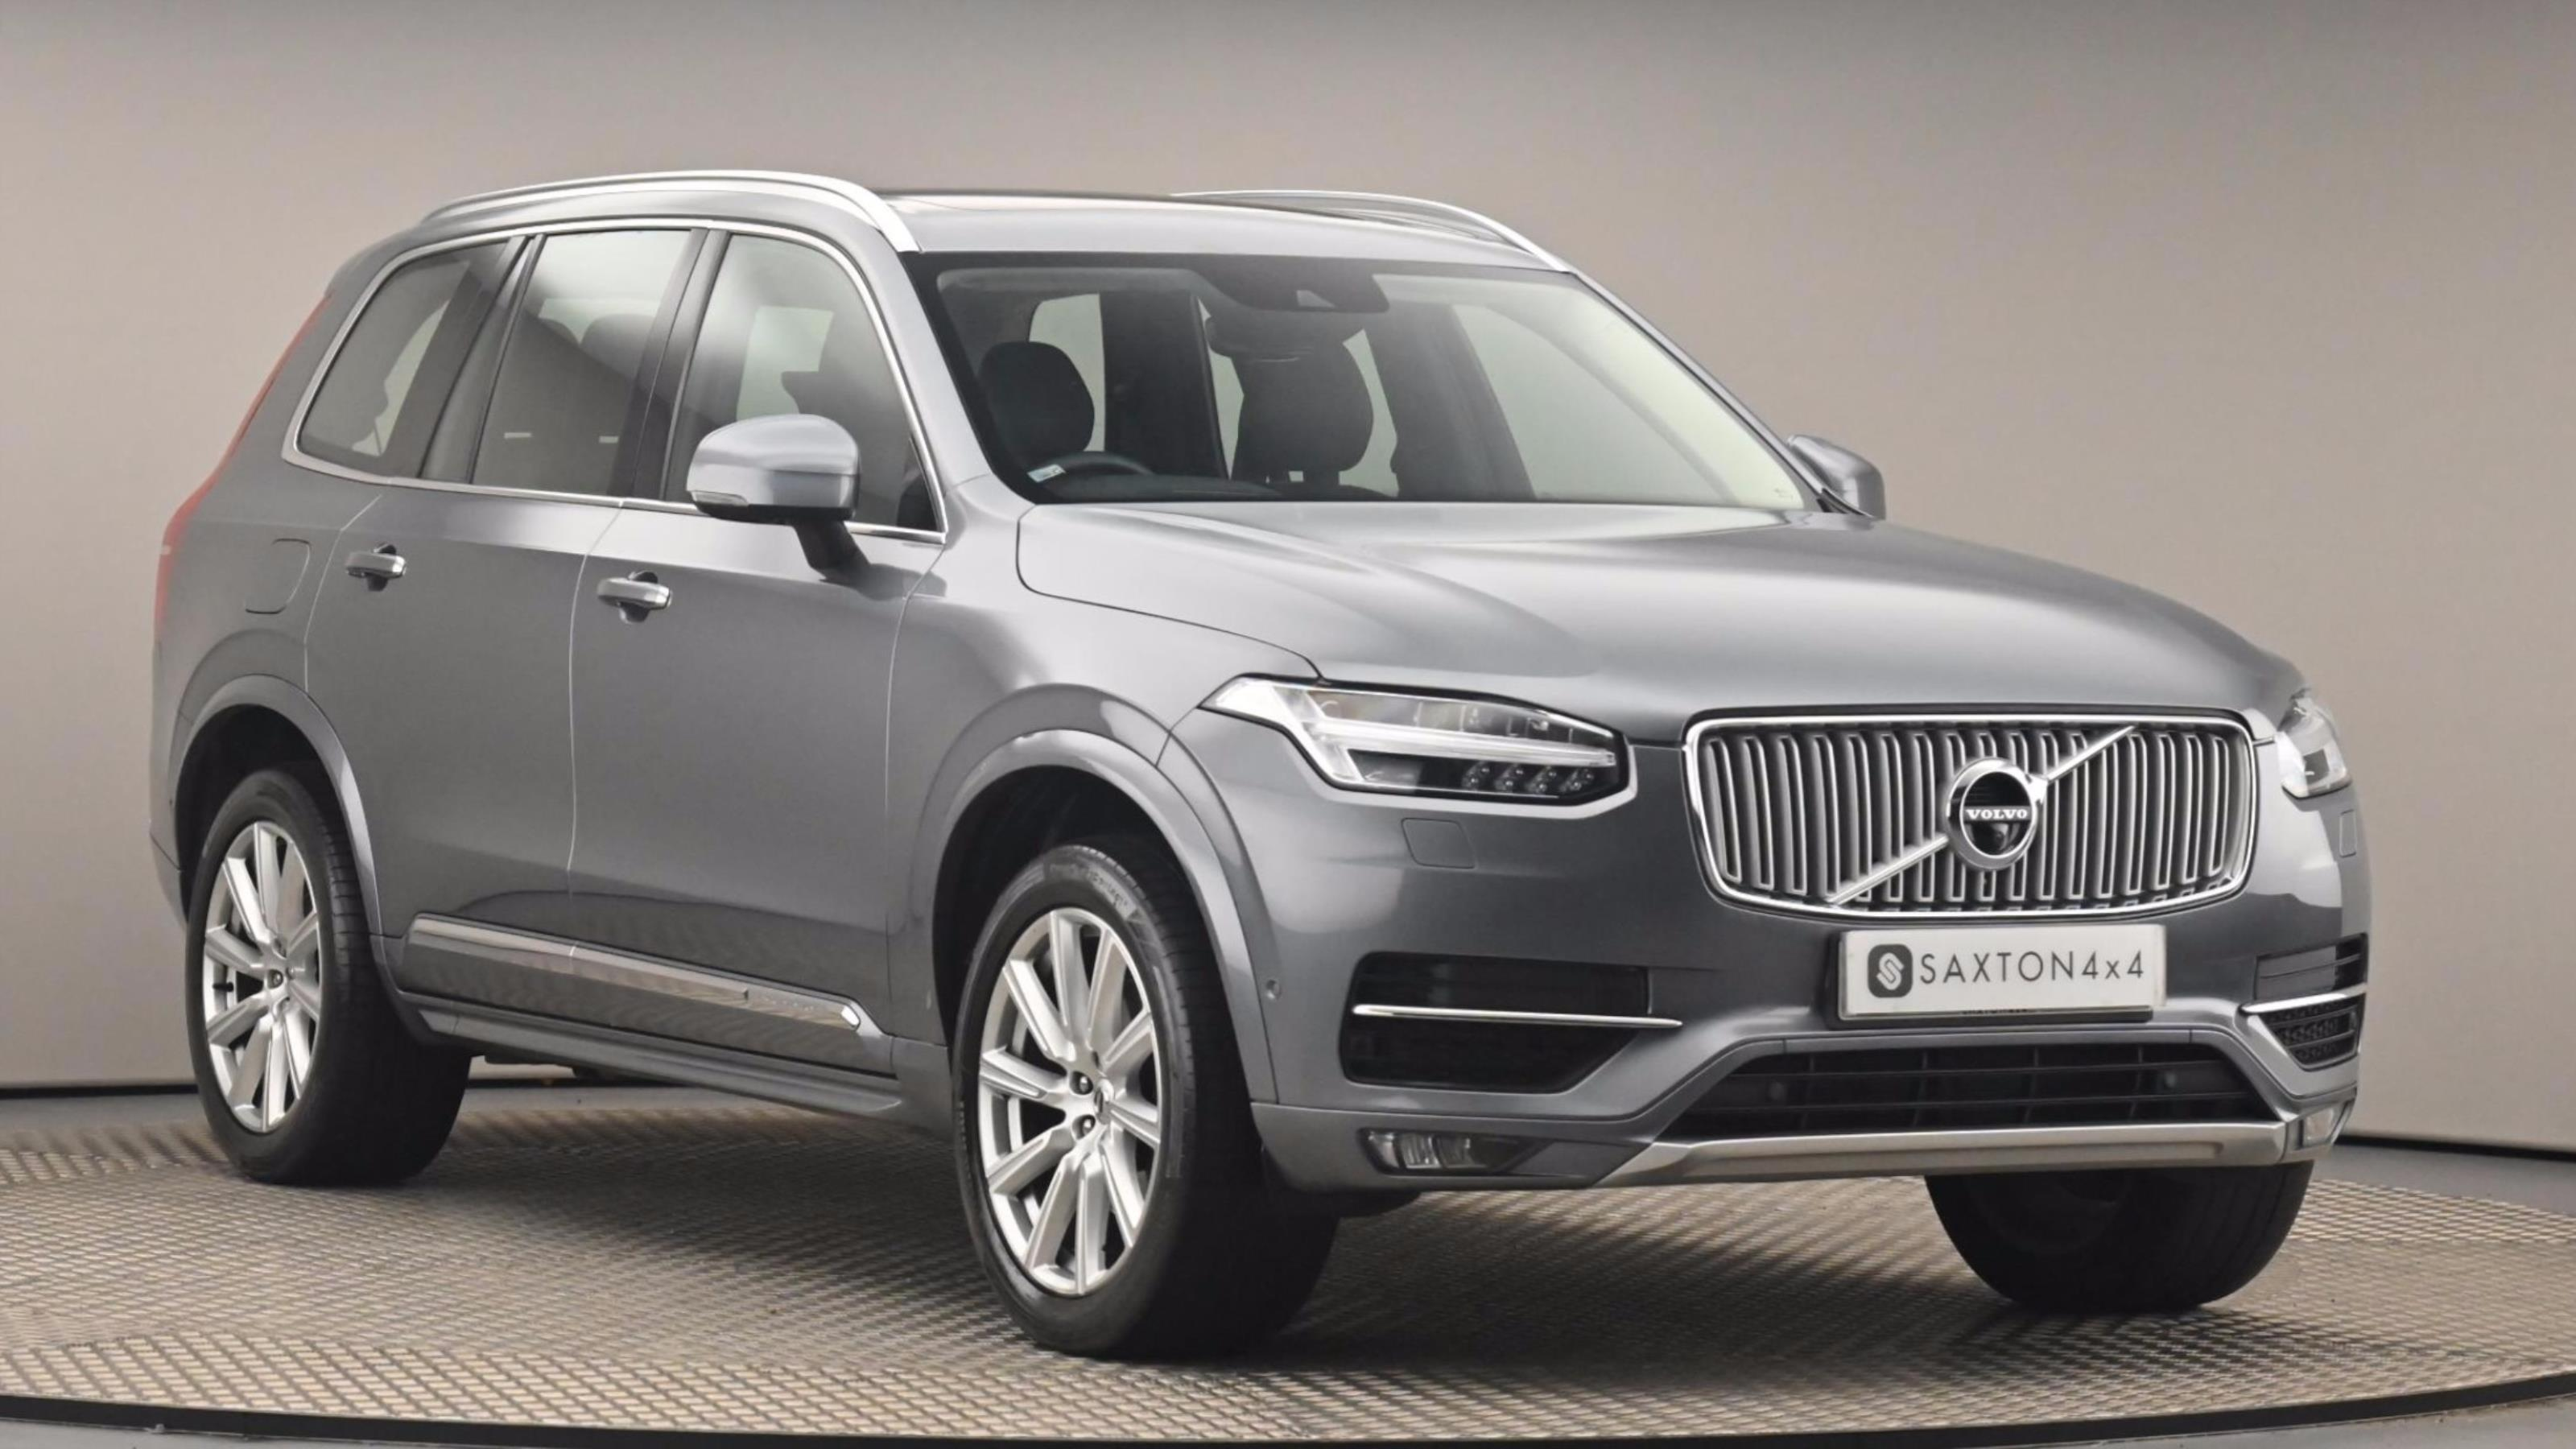 Used 2016 Volvo XC90 2.0 T6 Inscription 5dr AWD Geartronic GREY at Saxton4x4